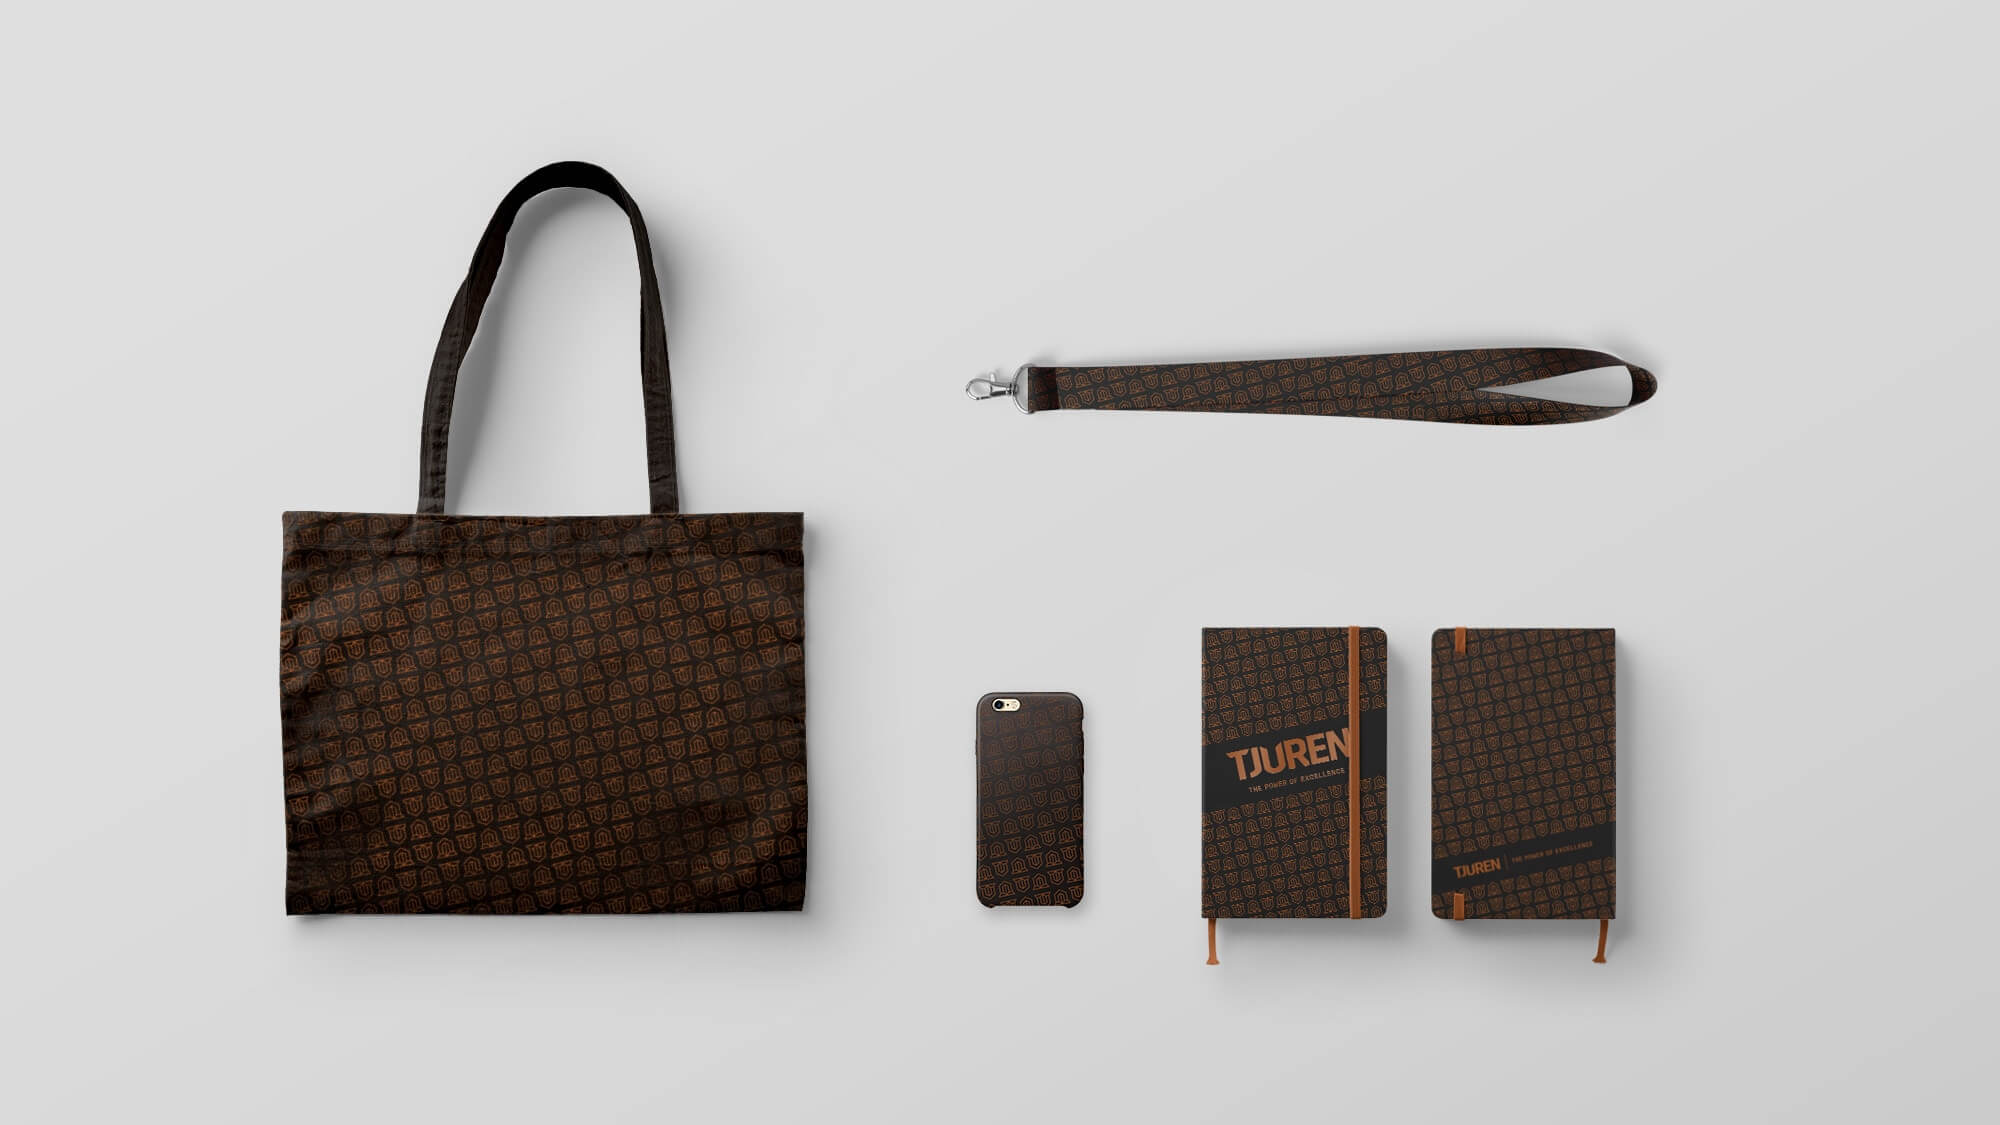 a lanyard, a totebag, a phonecase and a notebook on a flat surface, all with tjurens branding.